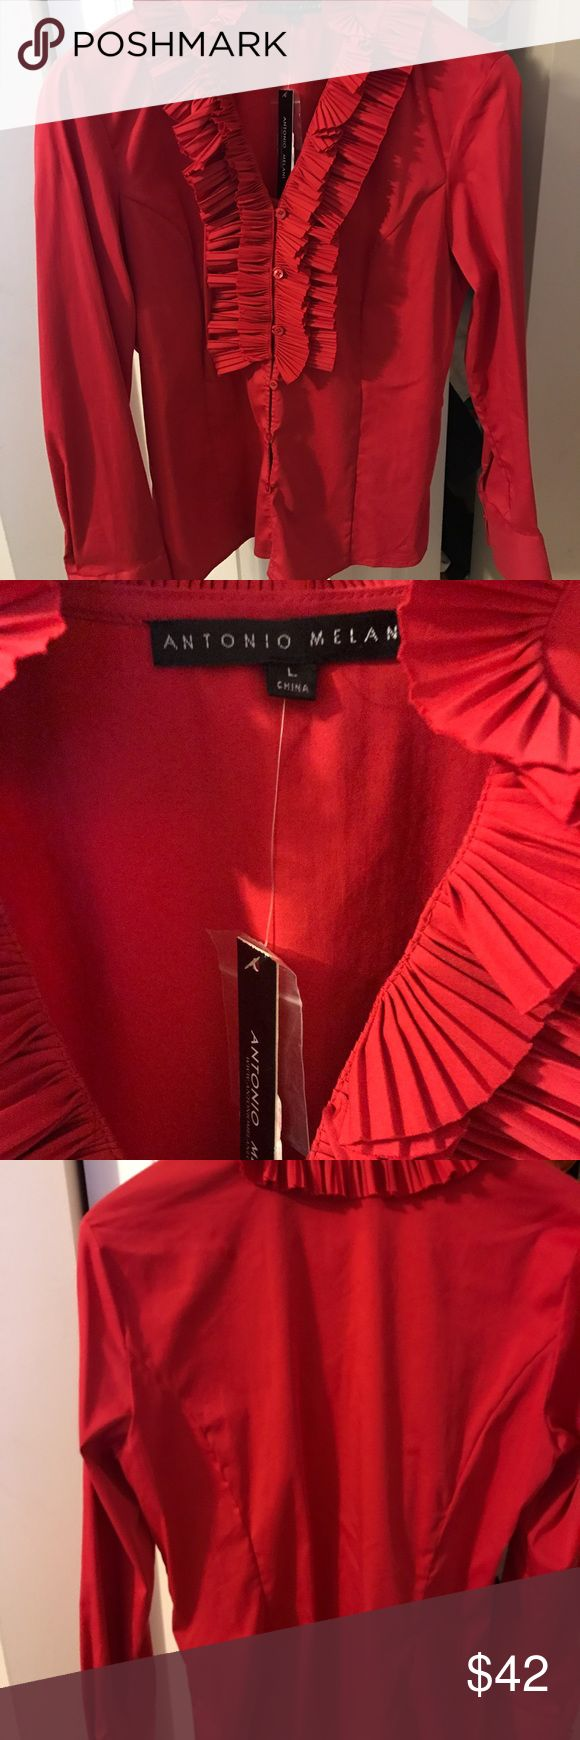 Antonio Melani shirt will look so feminine on. Never worn Antonio Melani shirt... ANTONIO MELANI Tops Blouses